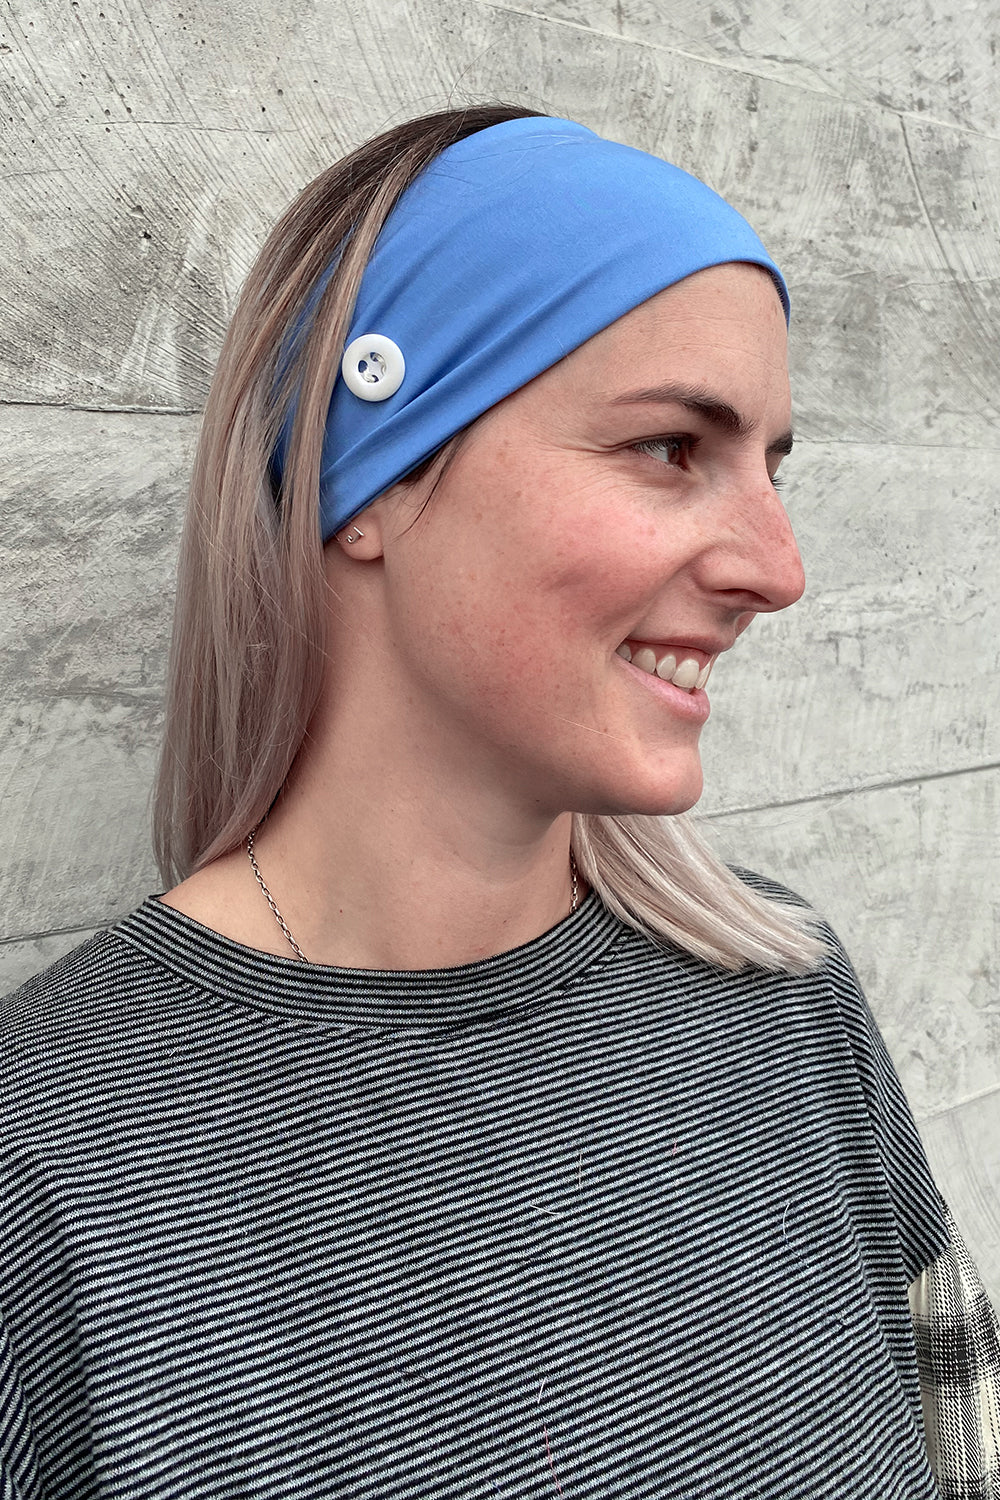 Headband for Face Mask Wear - Pack of 2 Blue